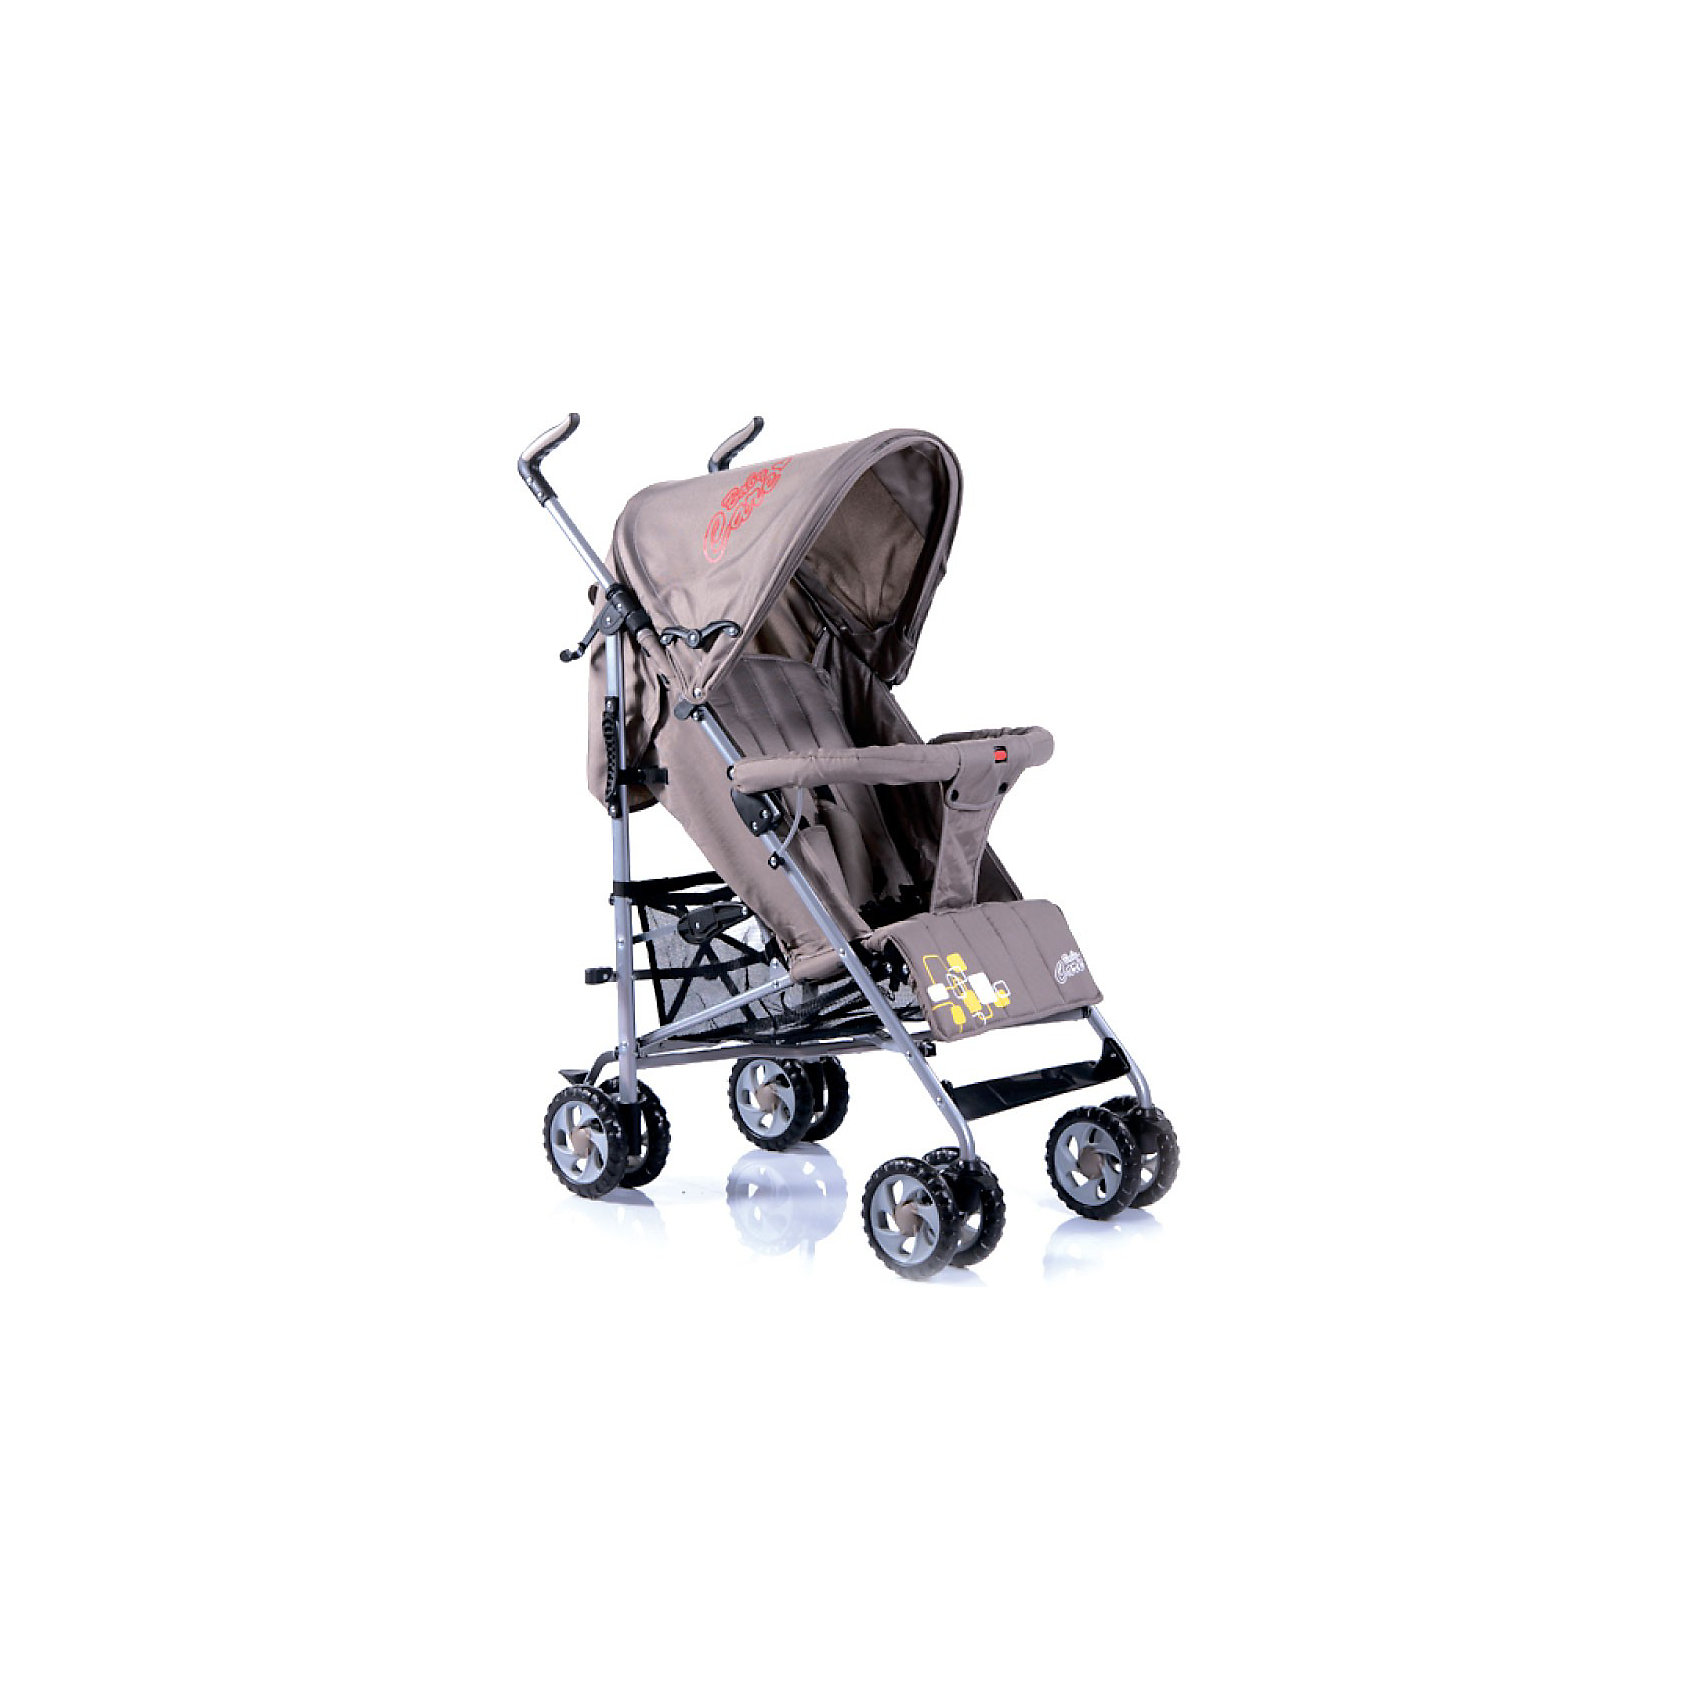 Baby Care Коляска-трость CityStyle, Baby Care, прогулочная коляска cool baby kdd 6699gb t fuchsia light grey